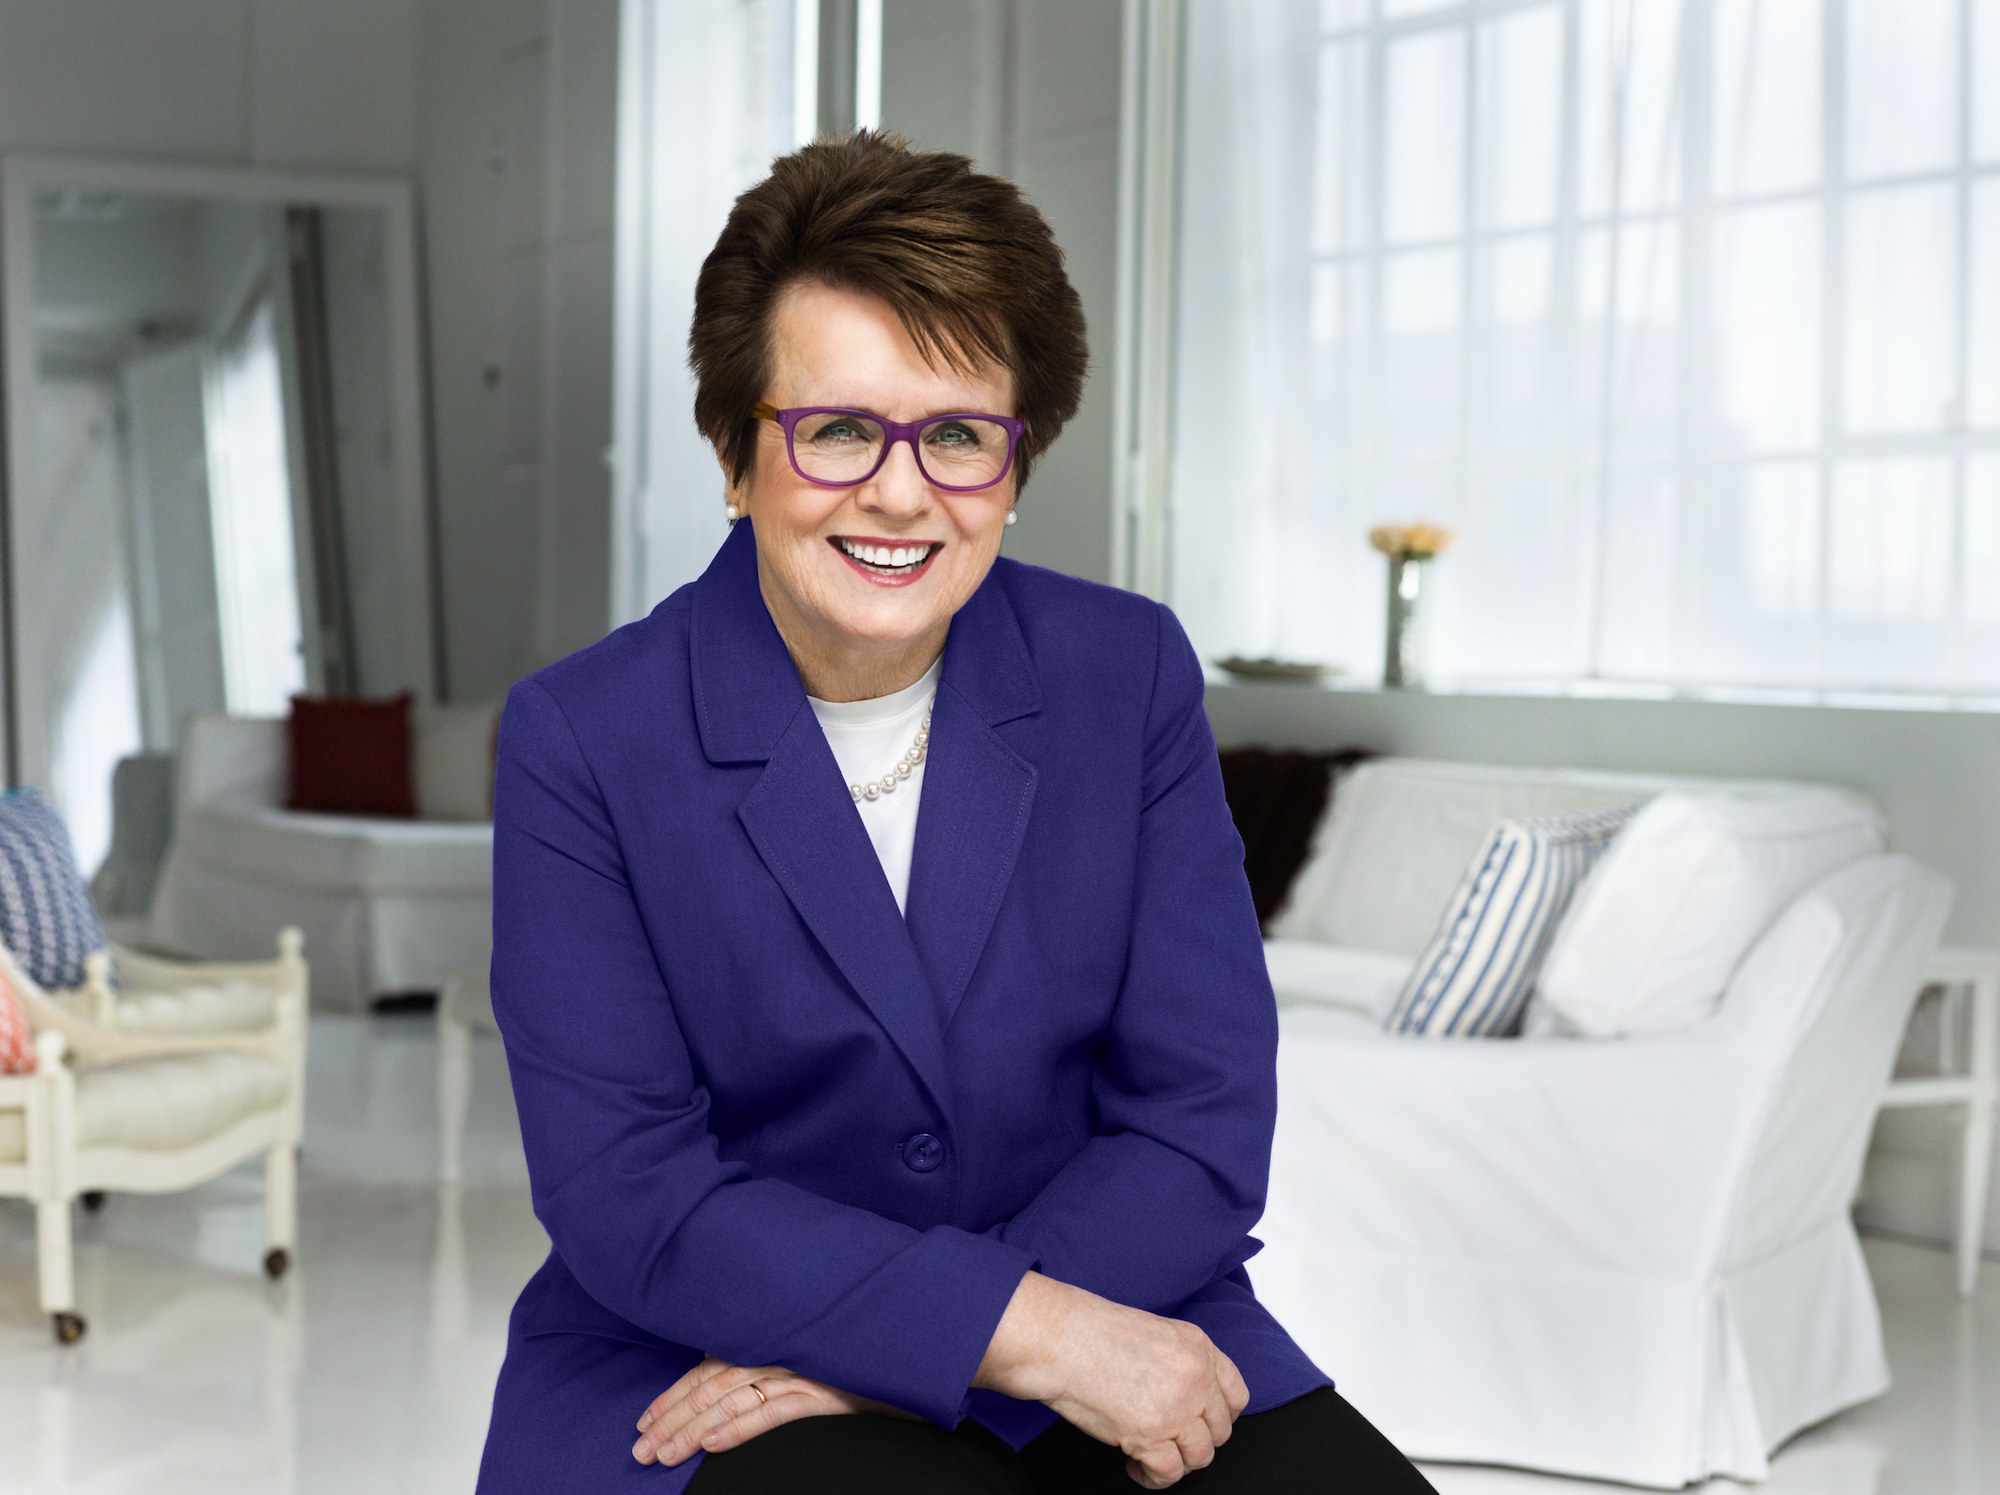 Billie Jean King Rallies Support For Active Aging